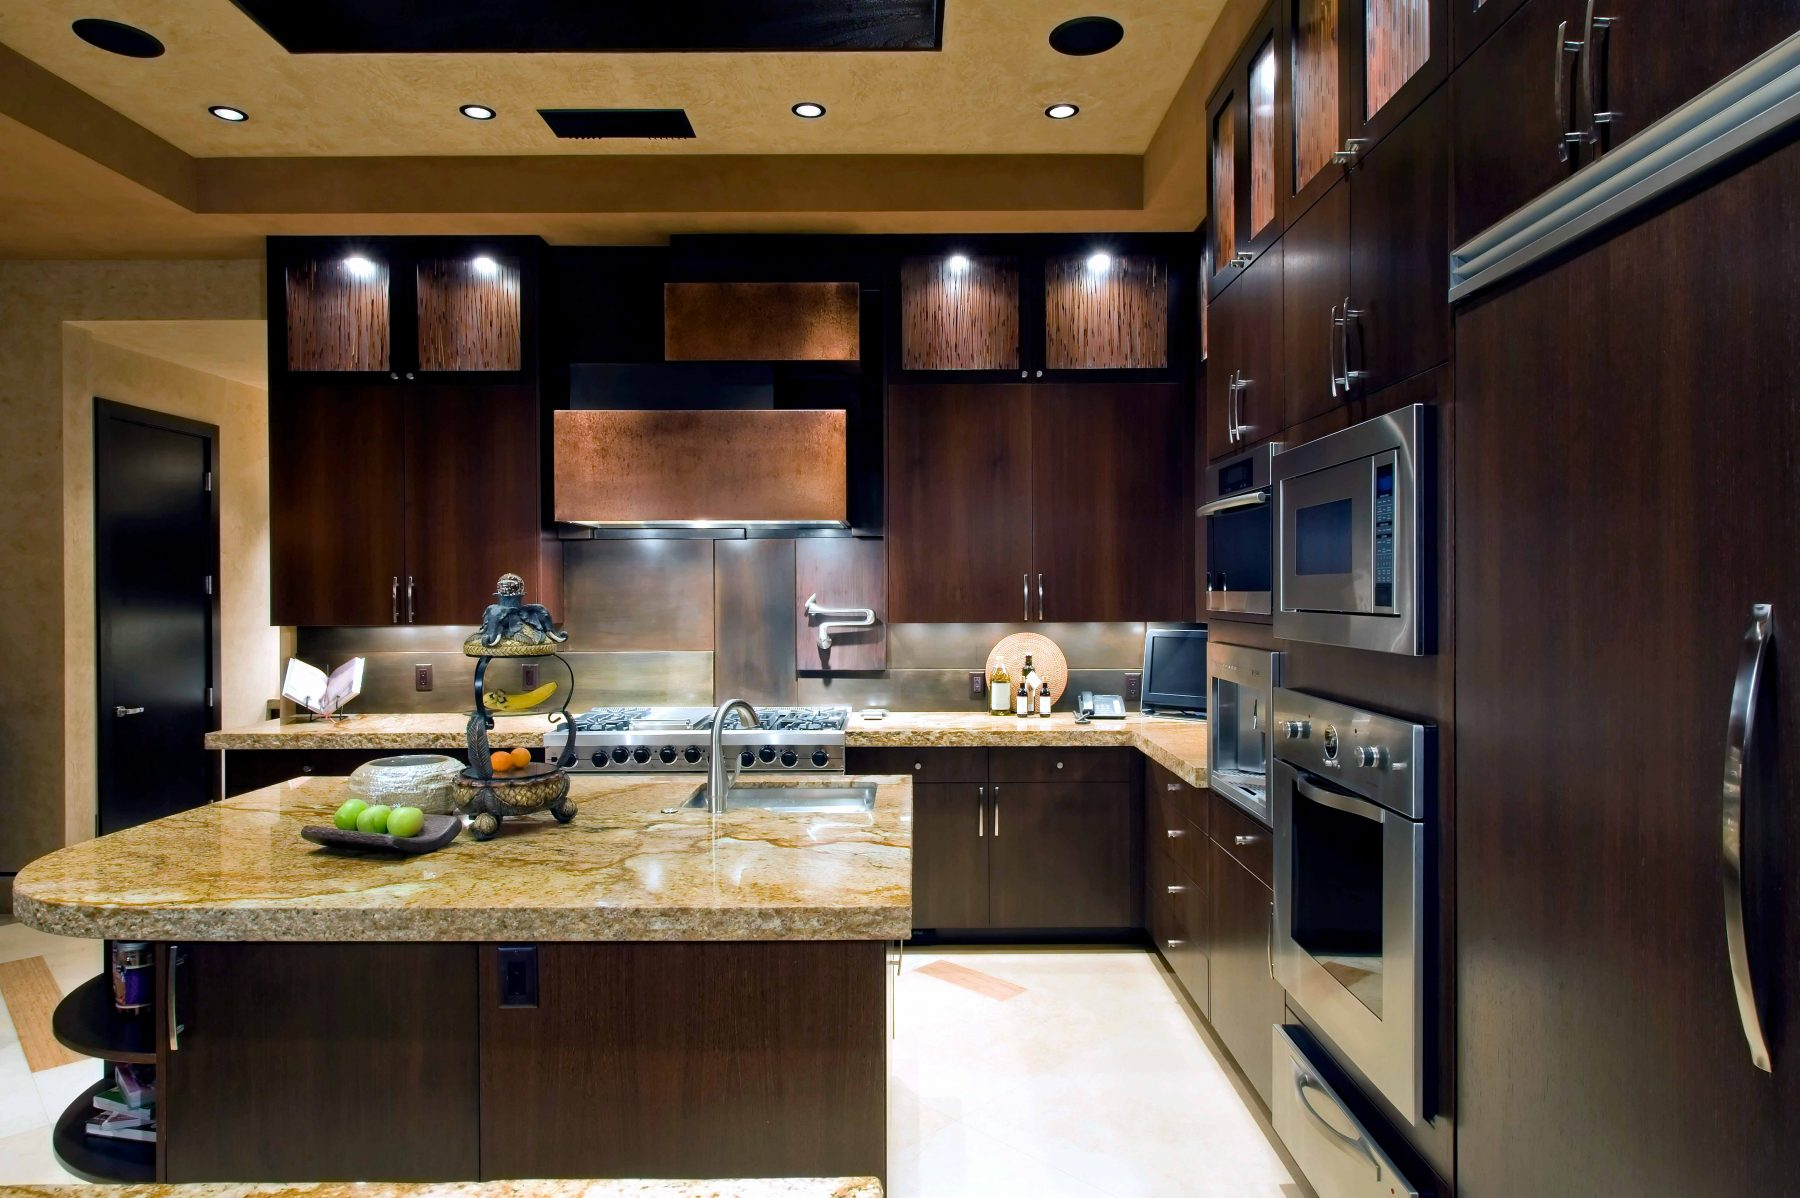 Modern kitchen in blog about kitchen plumbing problems.